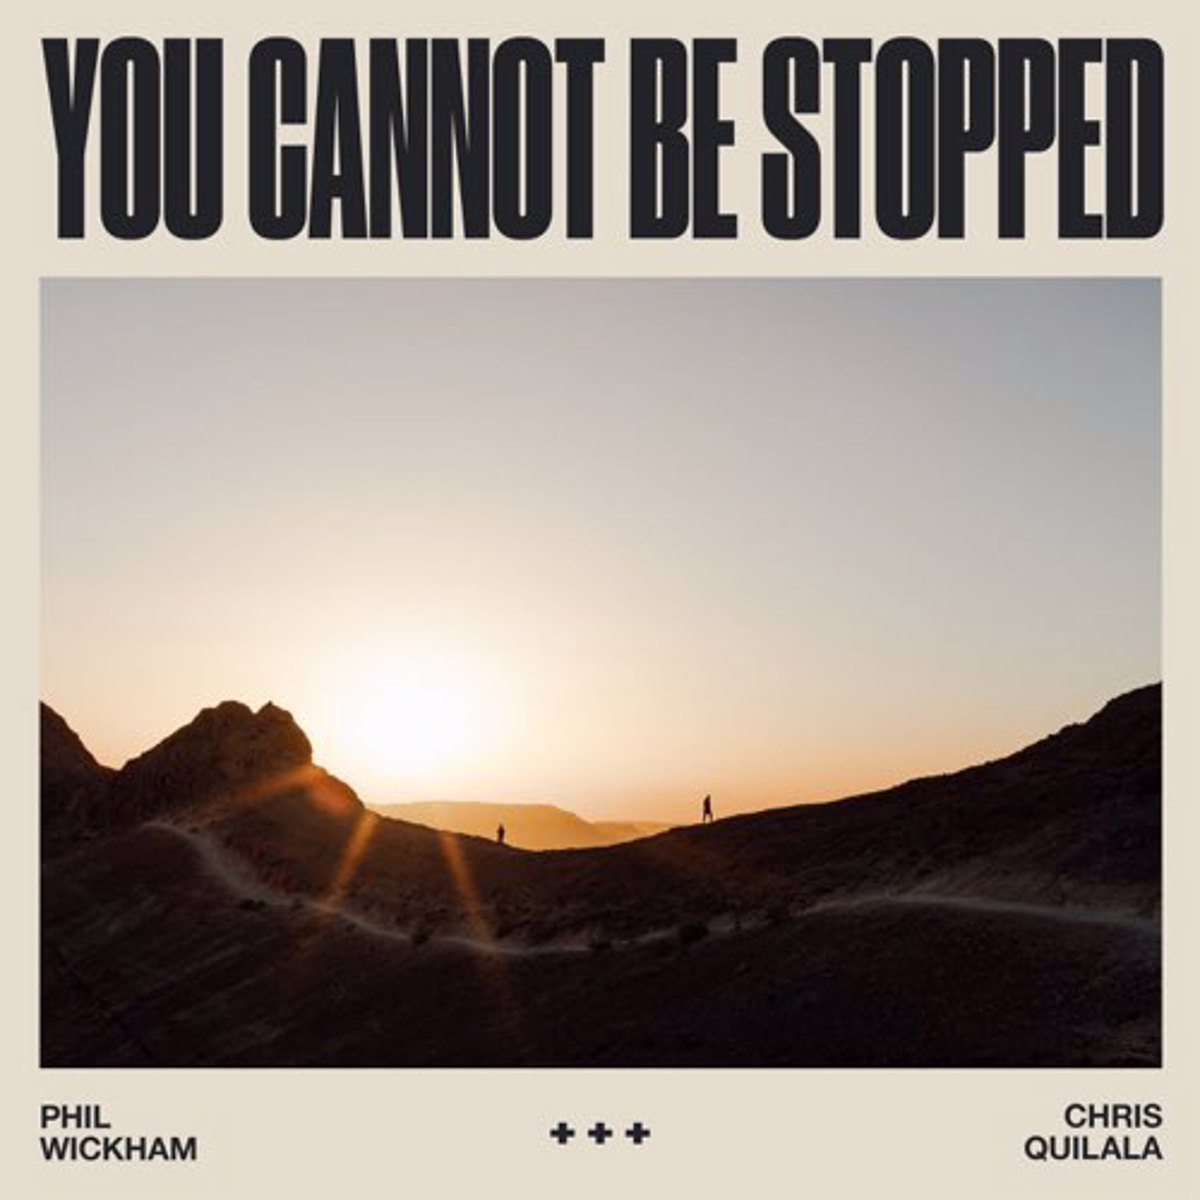 You Cannot Be Stopped (Single)